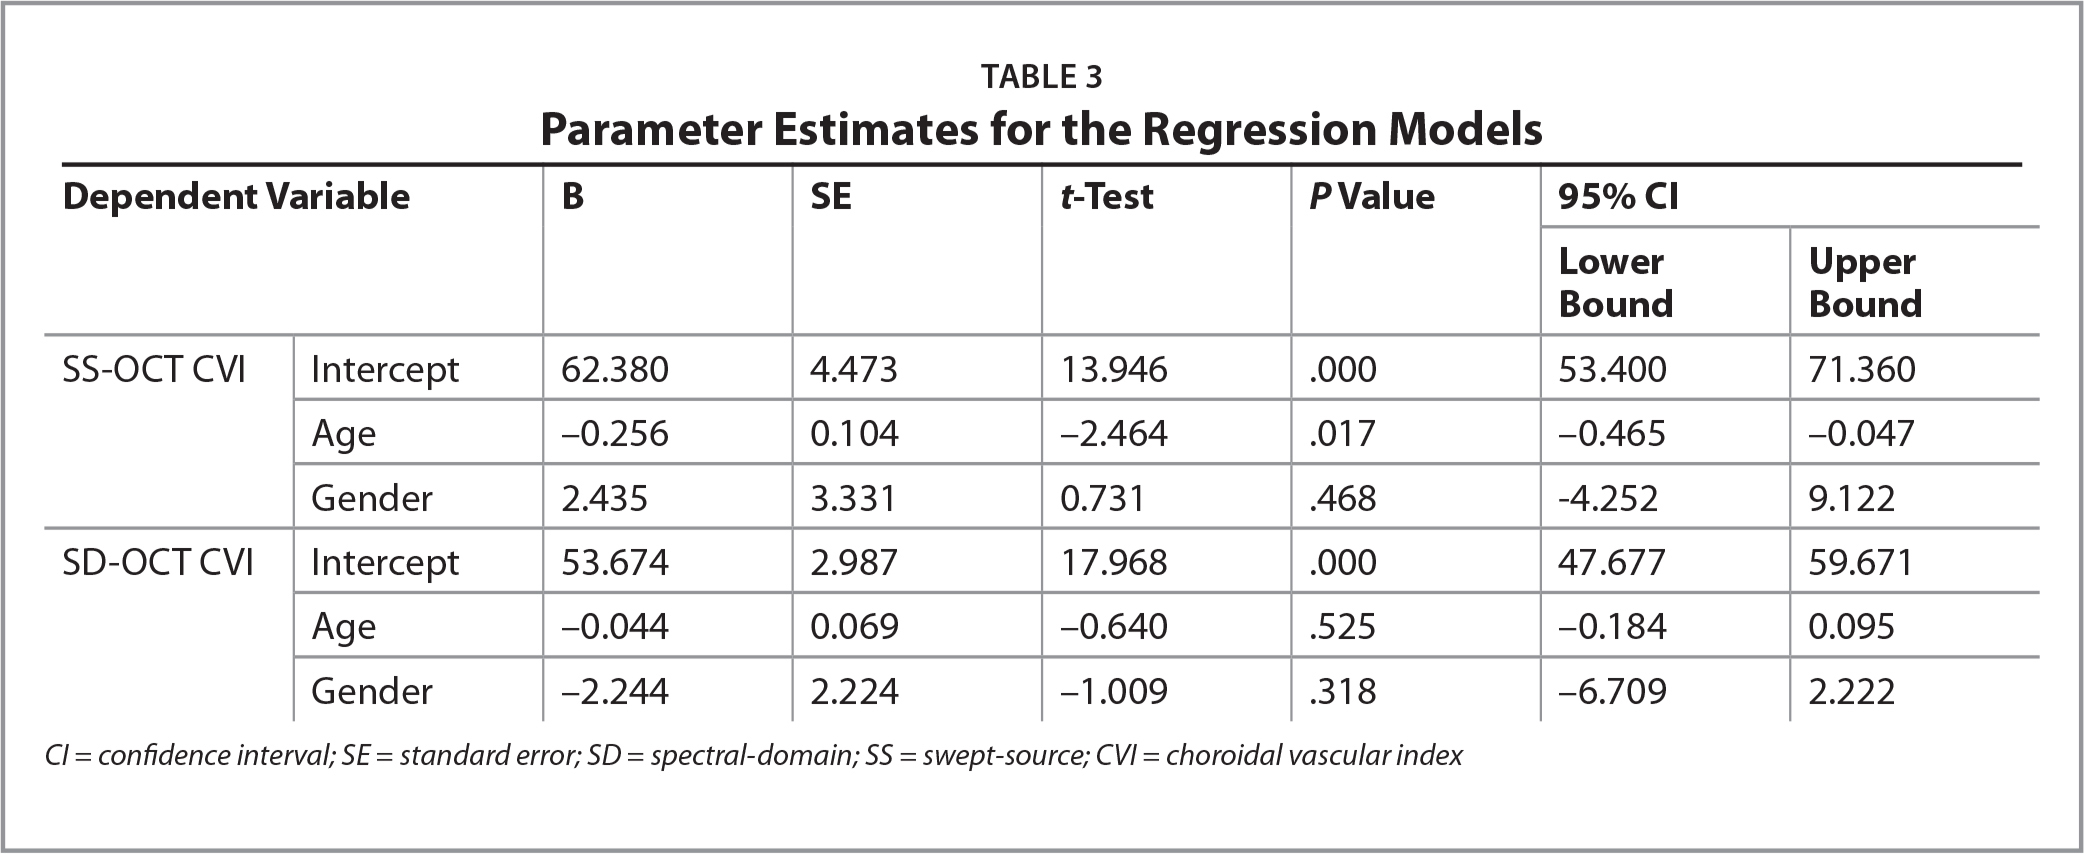 Parameter Estimates for the Regression Models